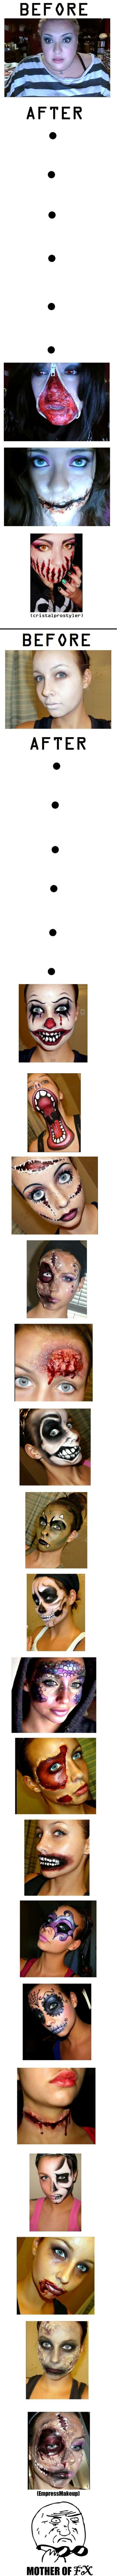 Amazing Makeup - Halloween: Holiday, Amazing Costume, Fx Makeup, Halloween Costumes, Halloween Makeup, Makeup Ideas, Special Effects, Halloweenmakeup